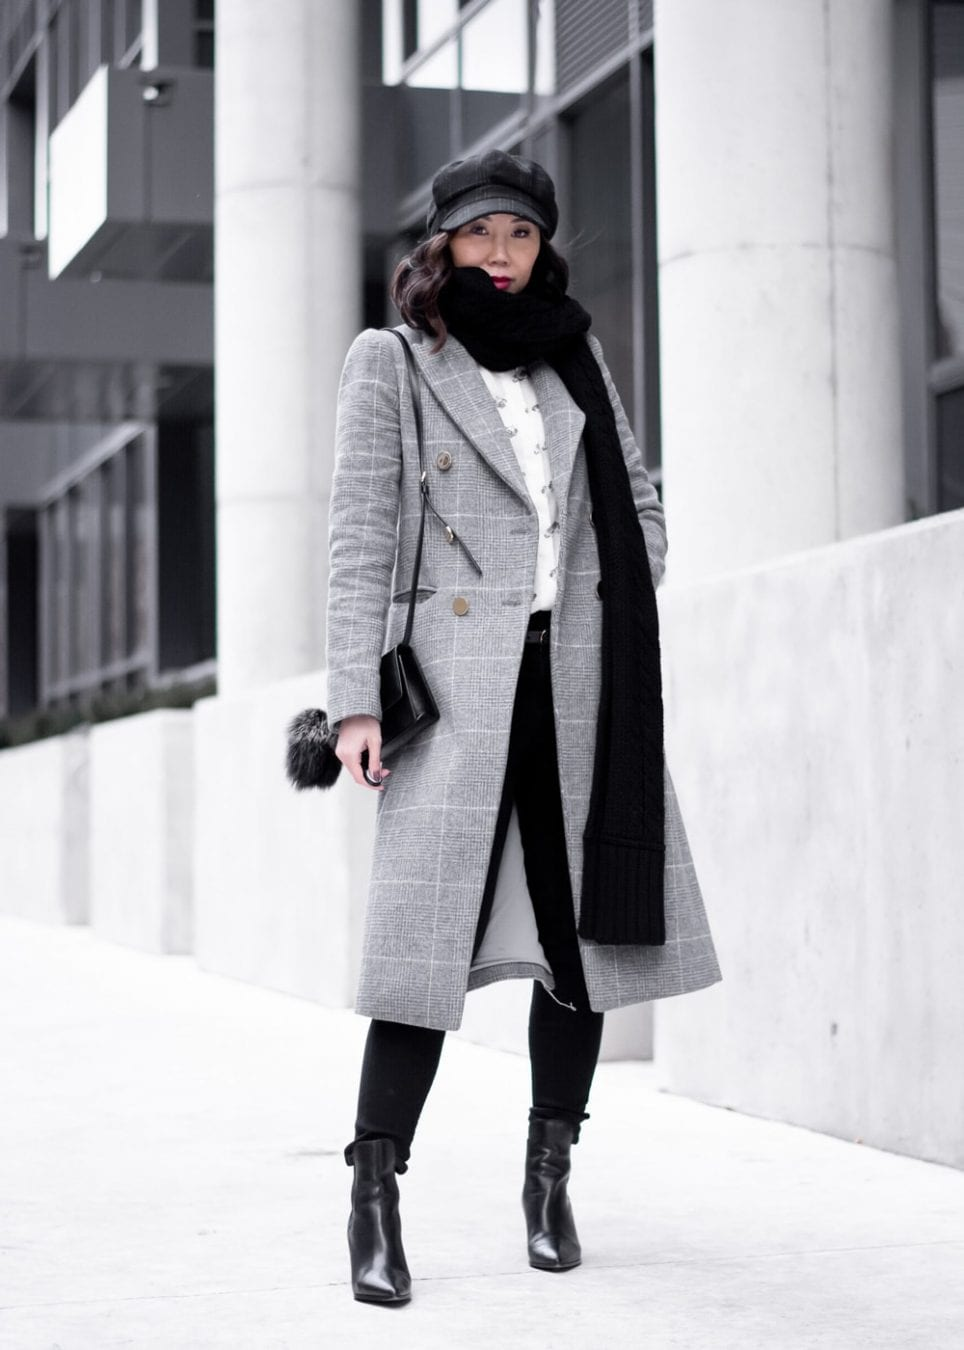 Winter outfit - Tips for surviving winter